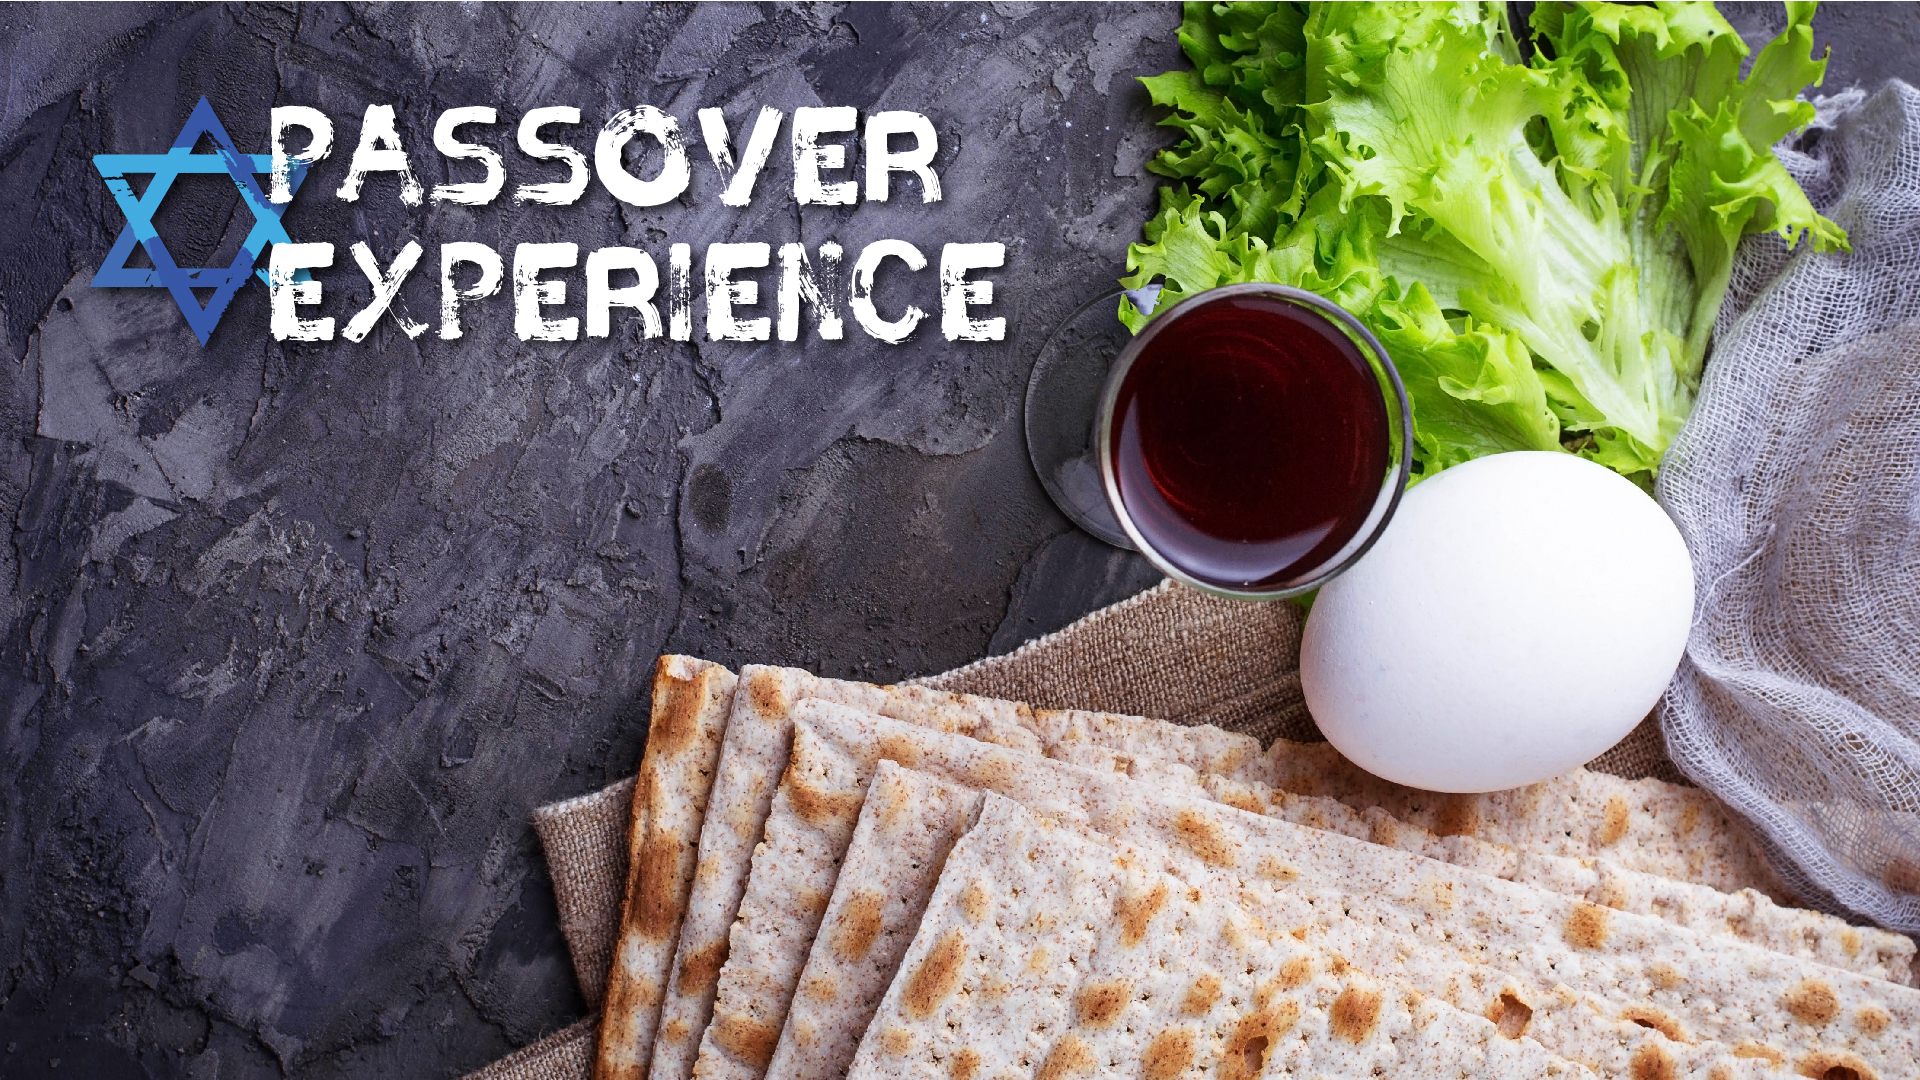 Passover experince